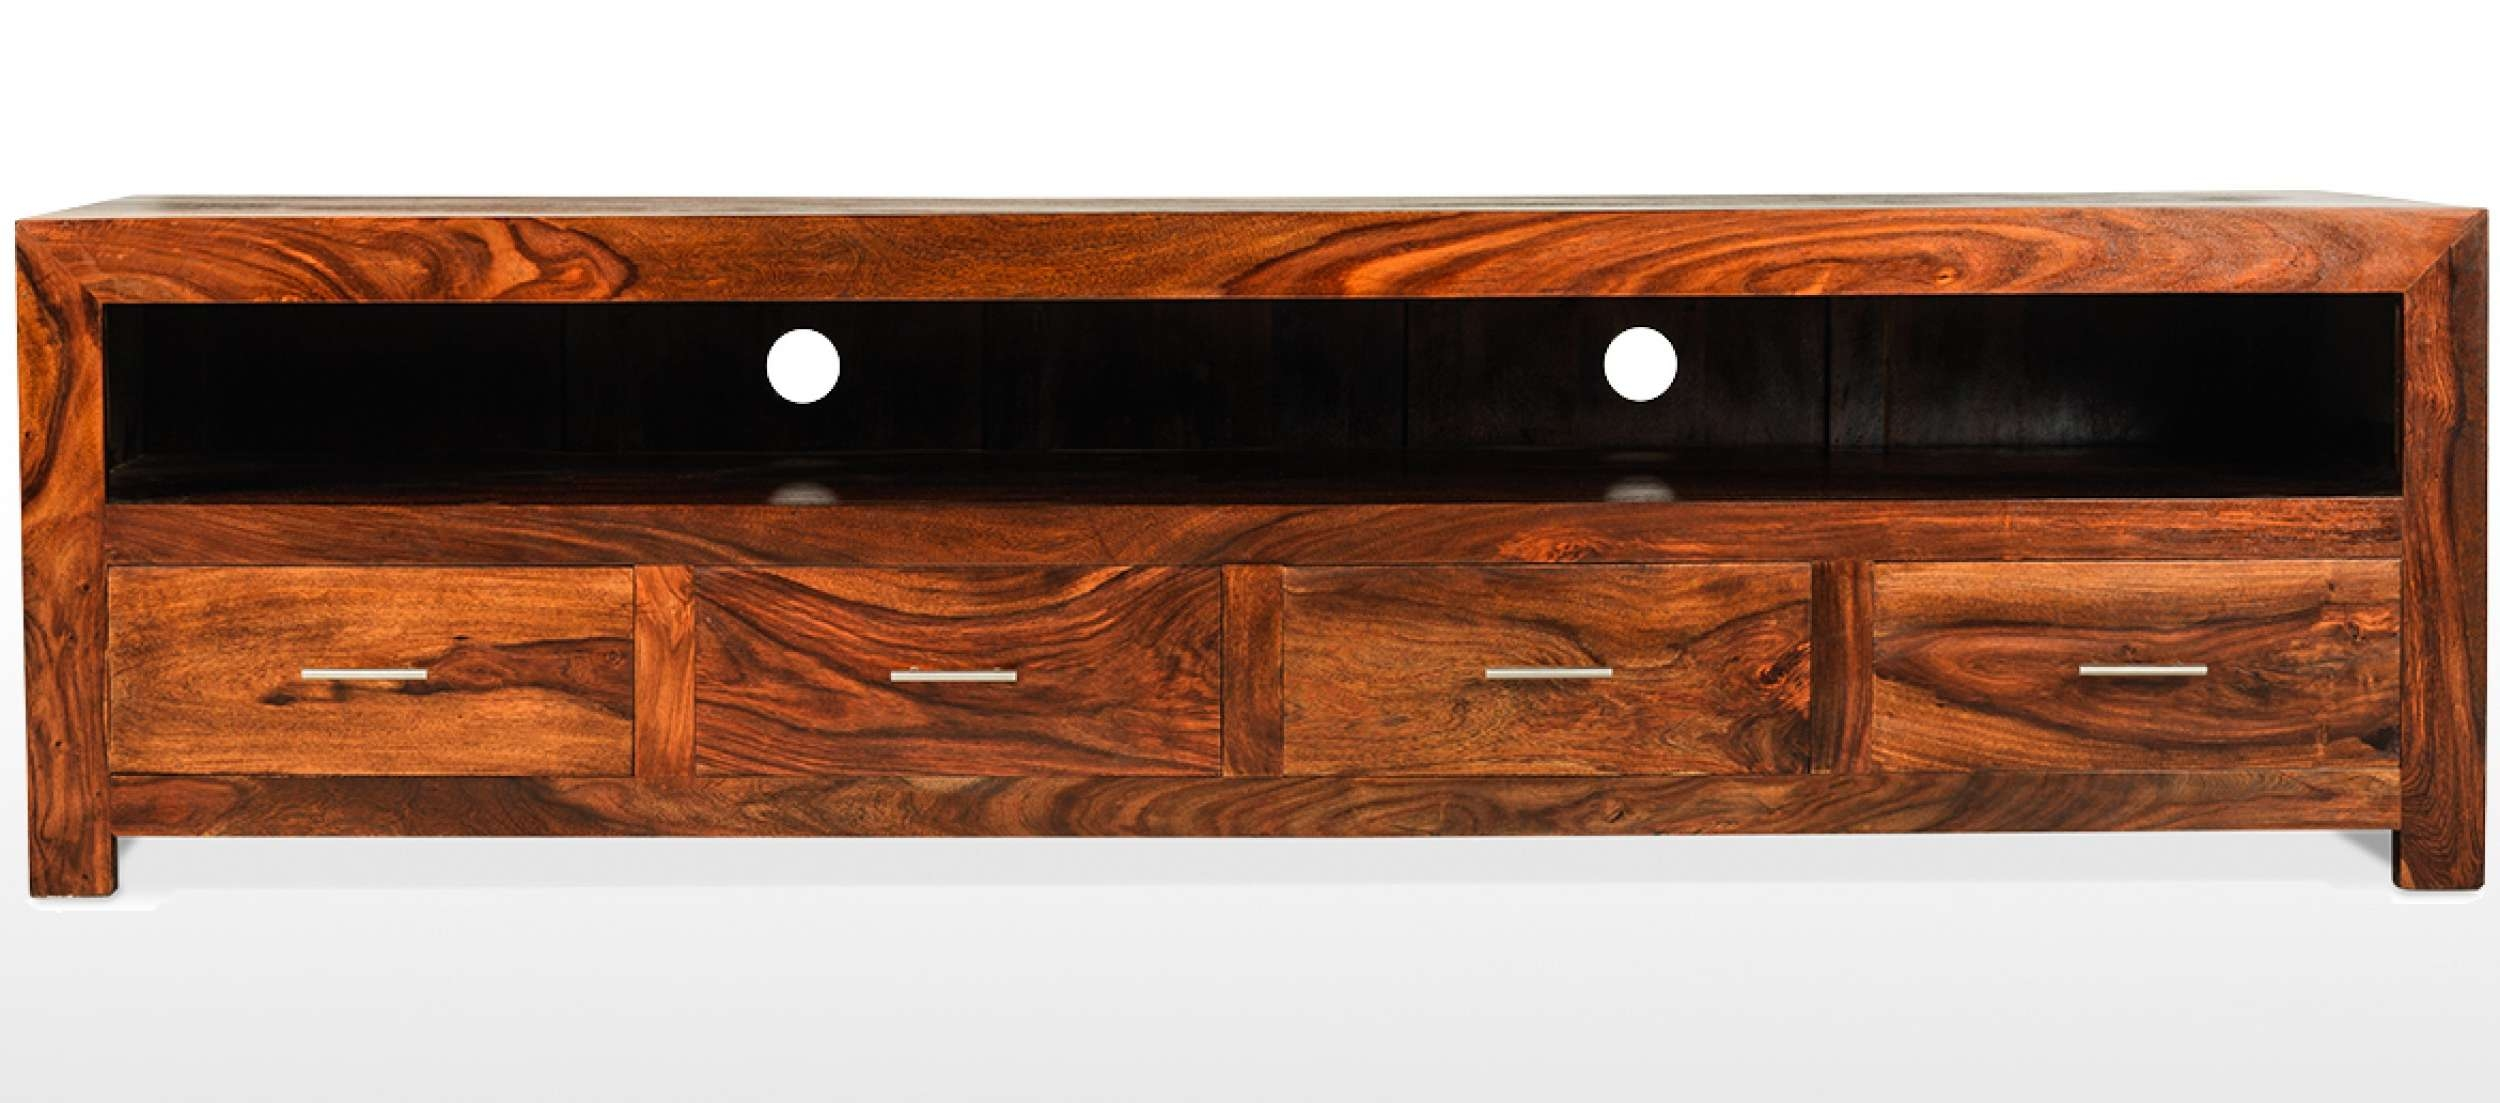 Cube Sheesham Long Plasma Tv Cabinet | Quercus Living With Regard To Long Tv Cabinets Furniture (View 5 of 20)